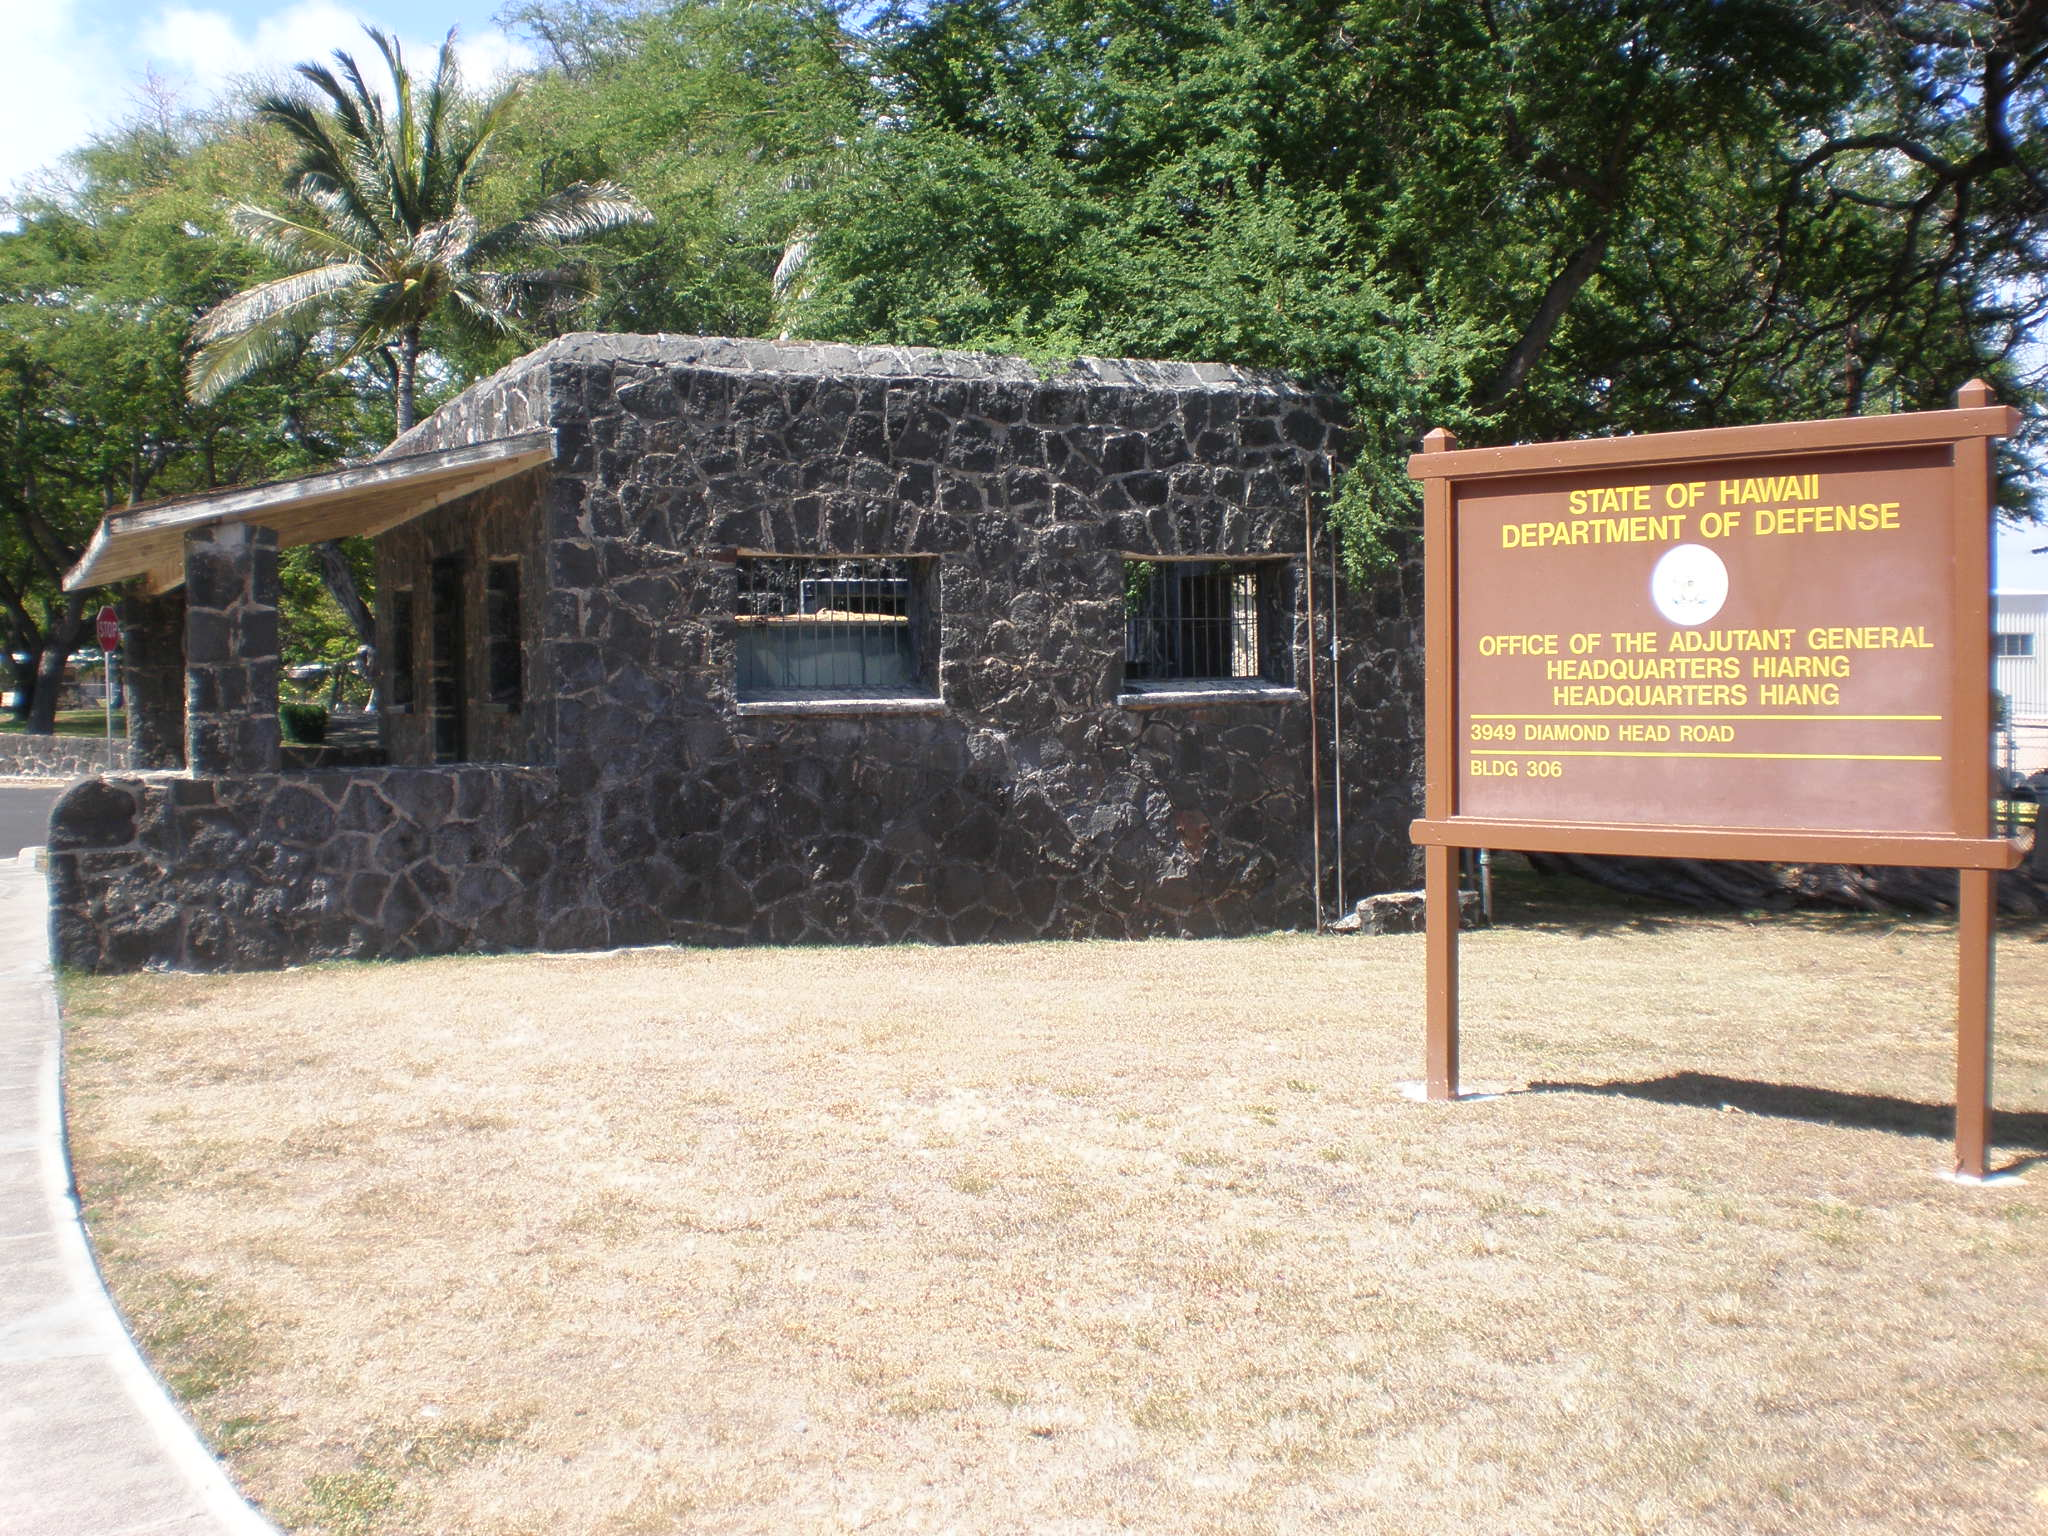 Original guard post located on Kahala side of crater